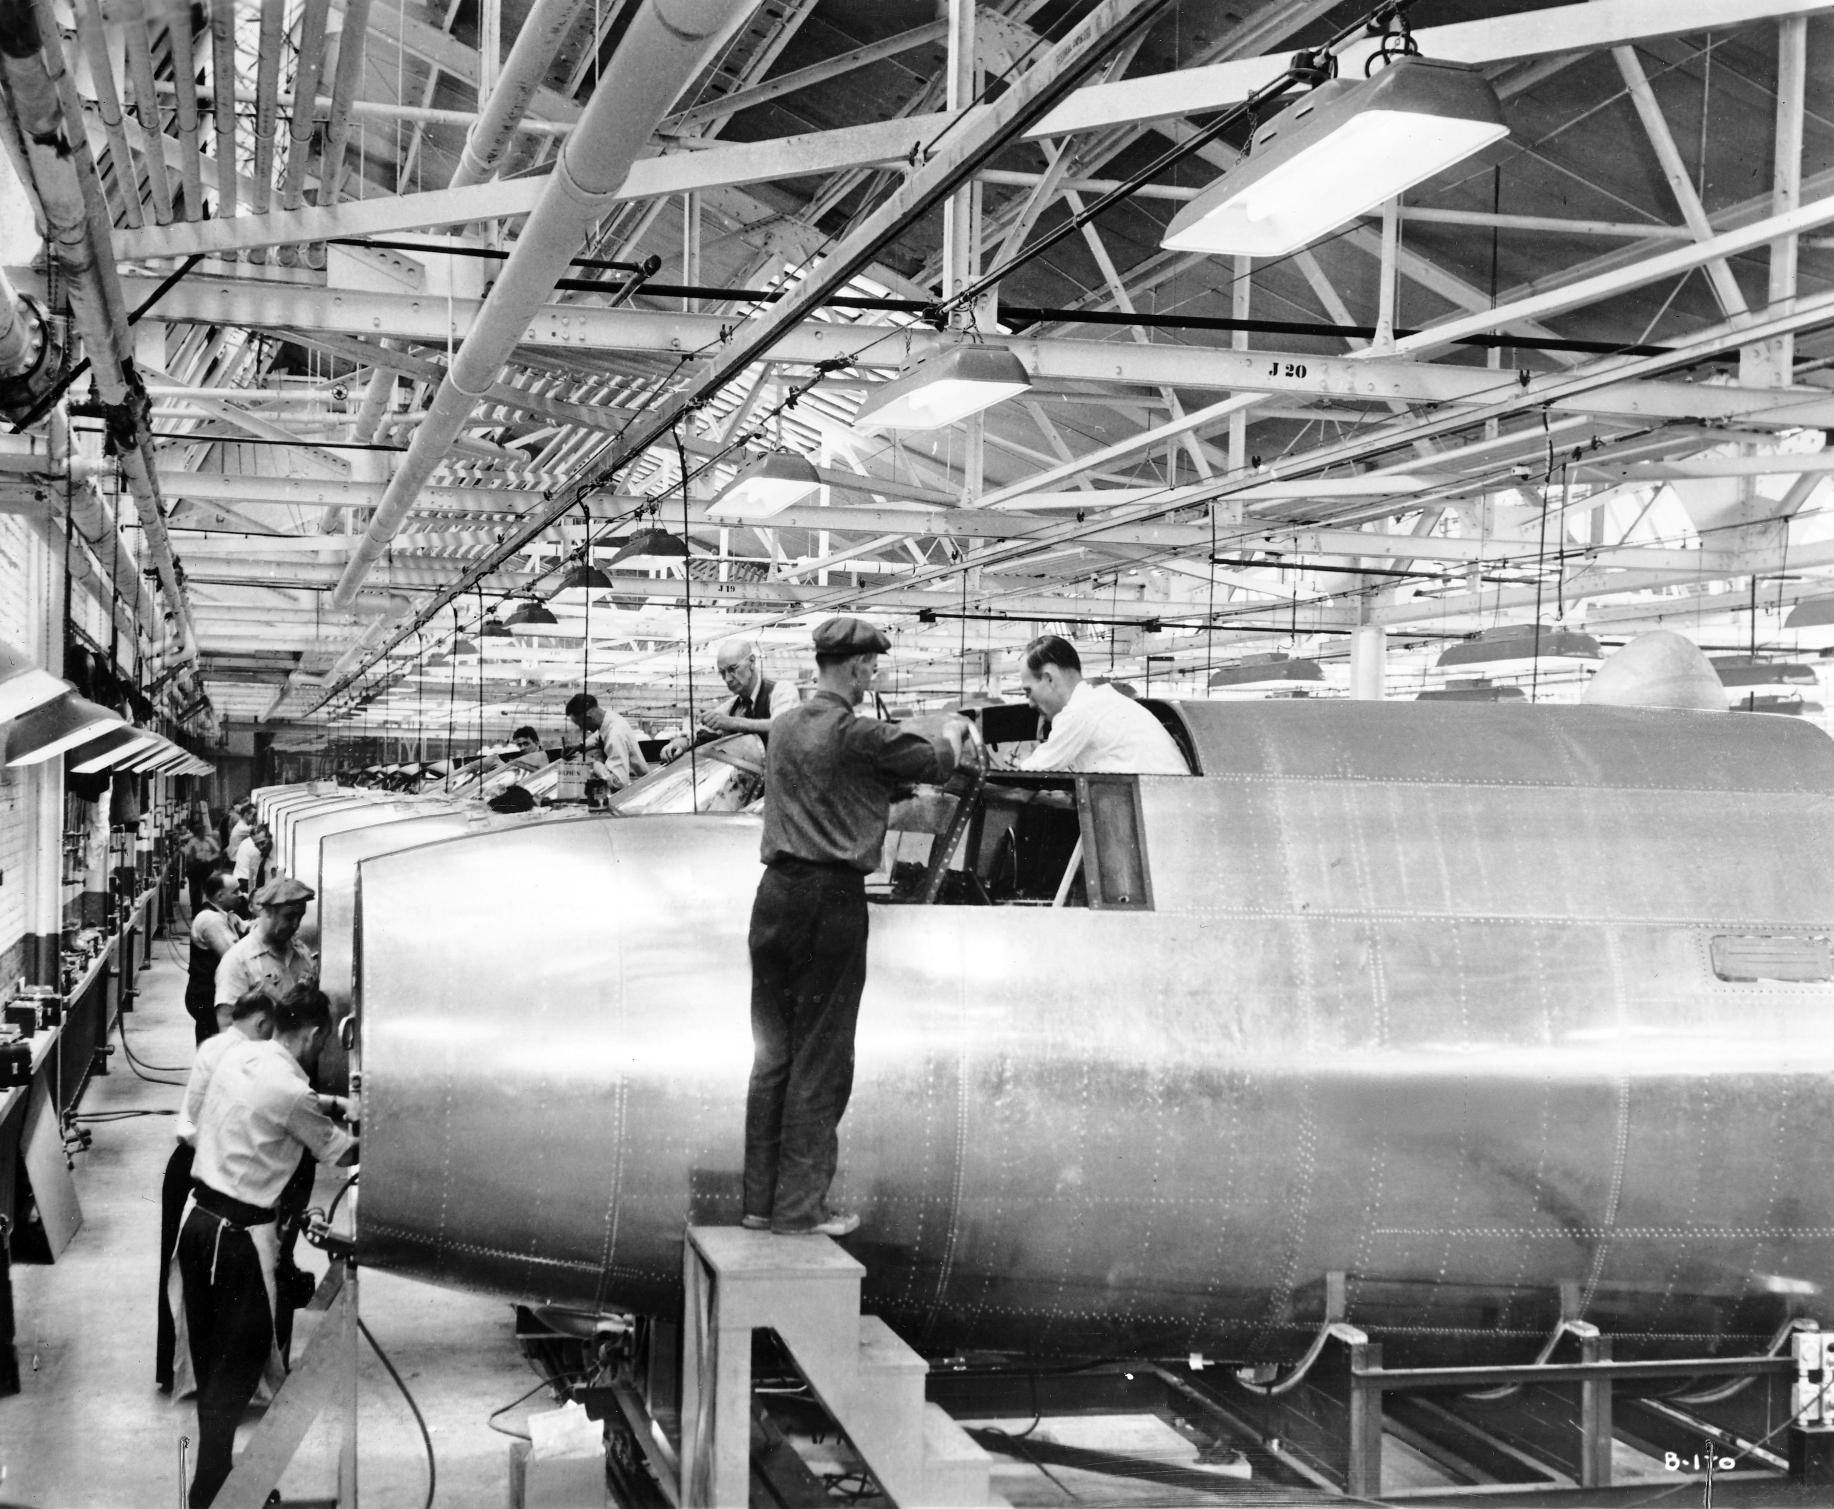 By mid-June 1941, the automaker was purchasing machinery to produce the nose and center fuselage sections for the Martin B-26 Marauder bomber.